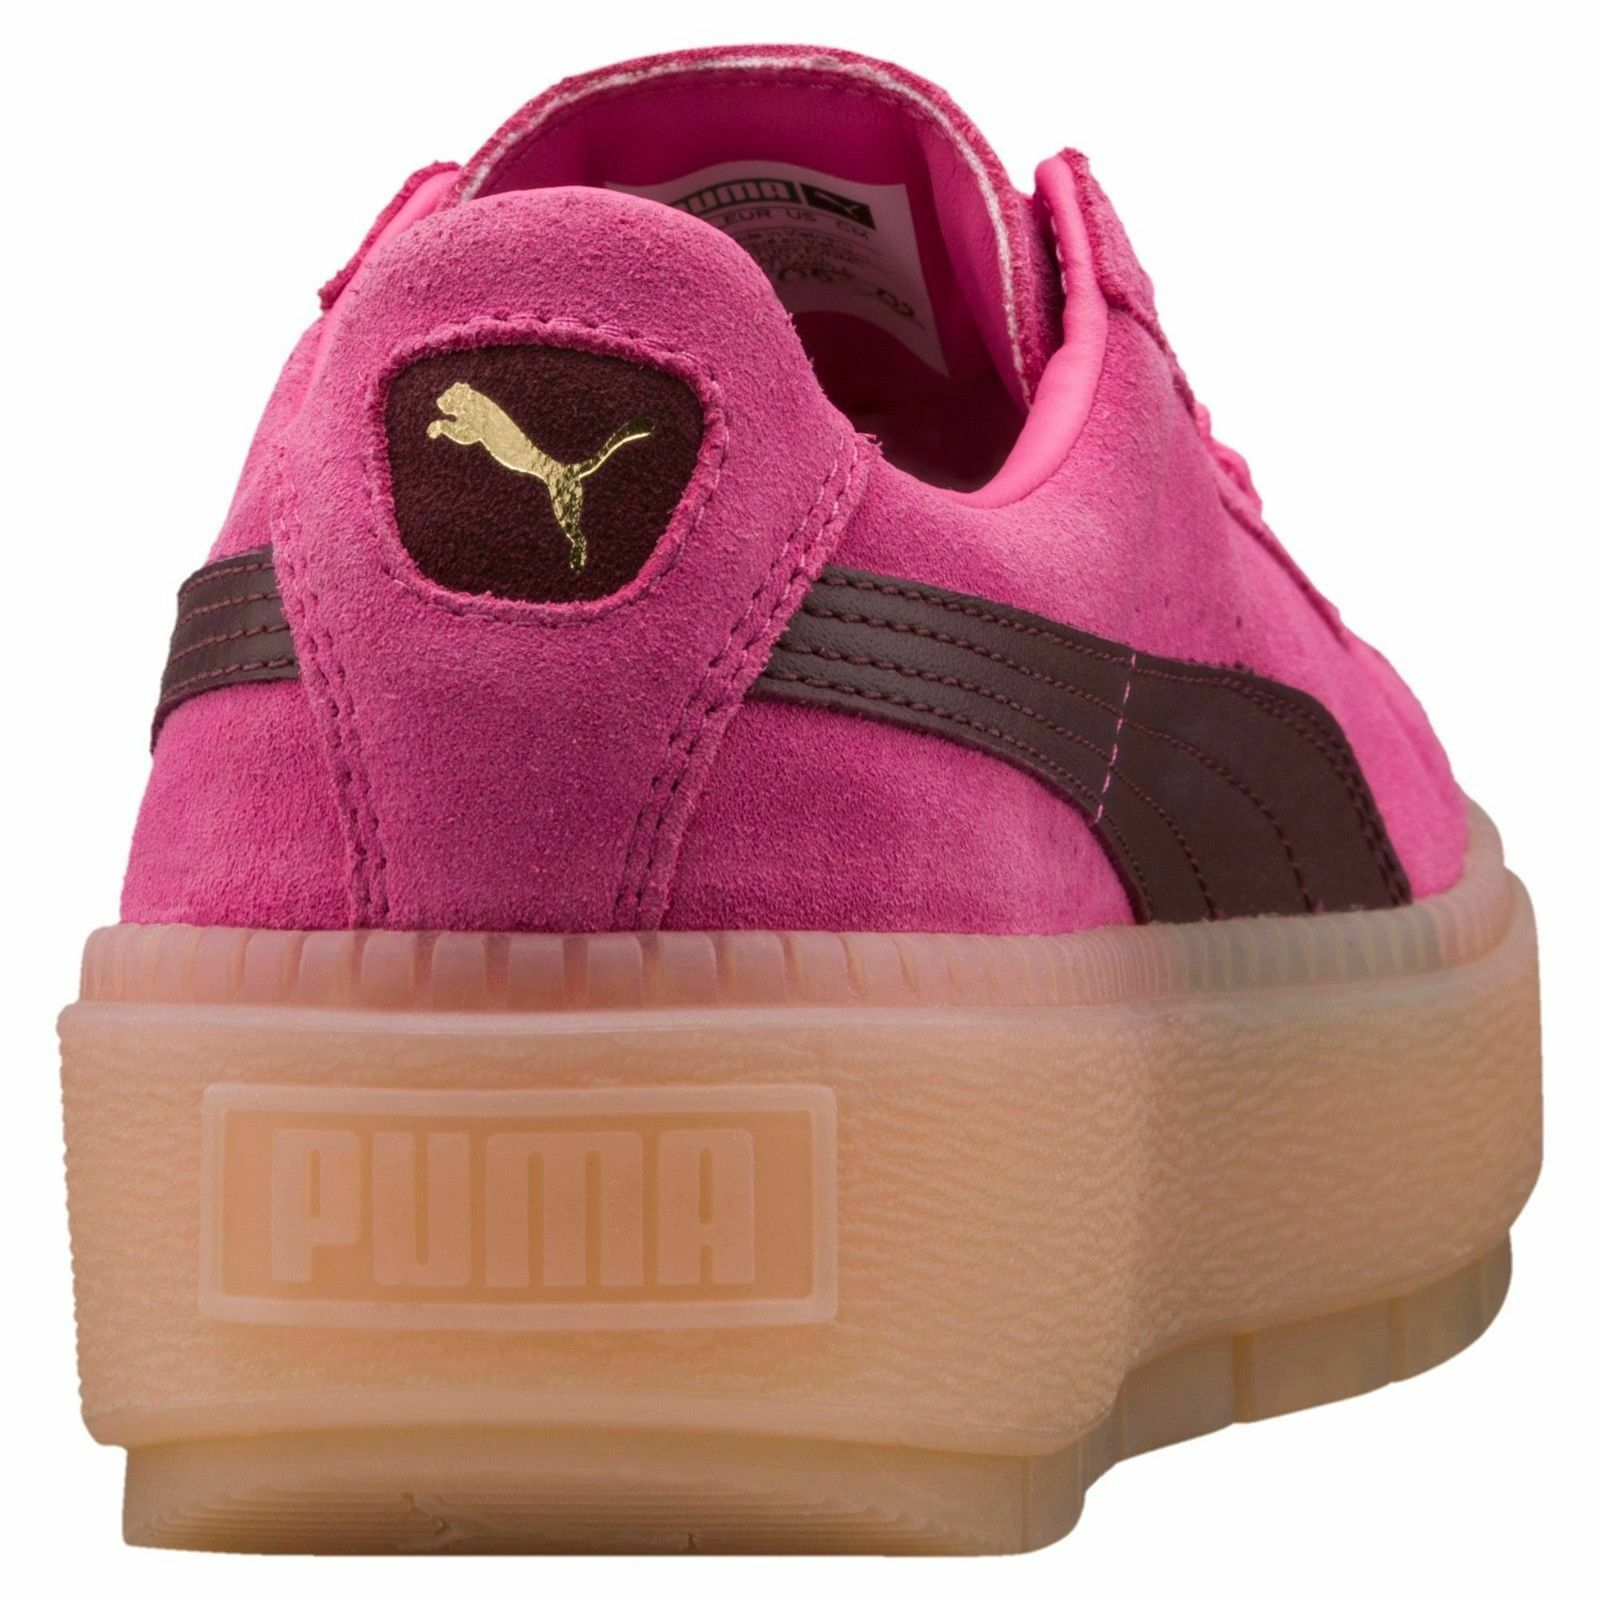 PUMA - 367057 02 02 02 - SUEDE - Women's shoes Fashion Sneakers - Pink - Size 8 45a164